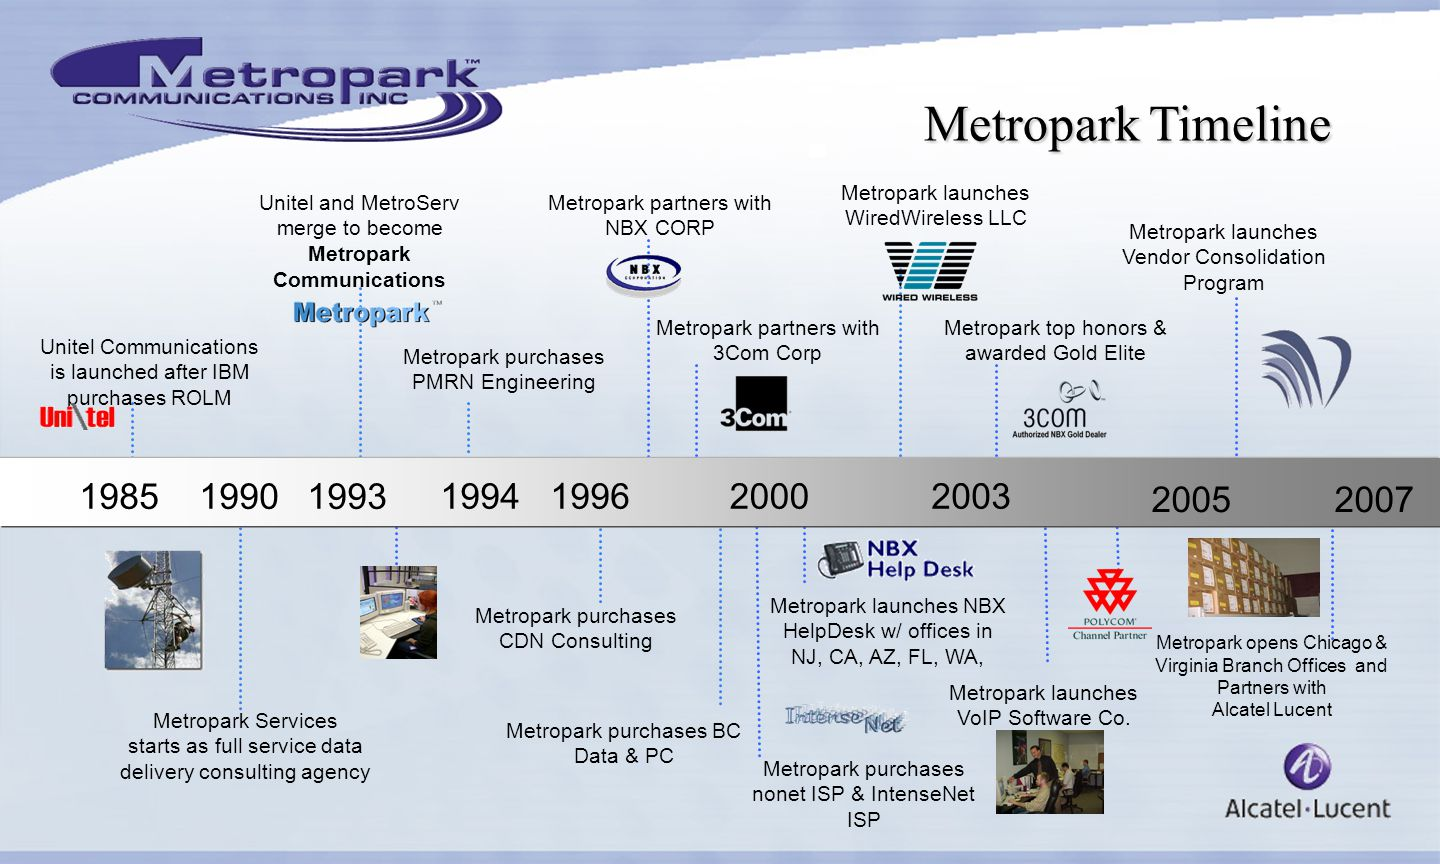 Metropark Timeline 2003 19851993 1994 19962000 2005 2007 Unitel Communications is launched after IBM purchases ROLM Metropark Services starts as full service data delivery consulting agency 1990 Unitel and MetroServ merge to become Metropark Communications Metropark purchases PMRN Engineering Metropark purchases CDN Consulting Metropark purchases BC Data & PC Metropark partners with NBX CORP Metropark partners with 3Com Corp Metropark launches NBX HelpDesk w/ offices in NJ, CA, AZ, FL, WA, Metropark purchases nonet ISP & IntenseNet ISP Metropark launches WiredWireless LLC Metropark launches VoIP Software Co.